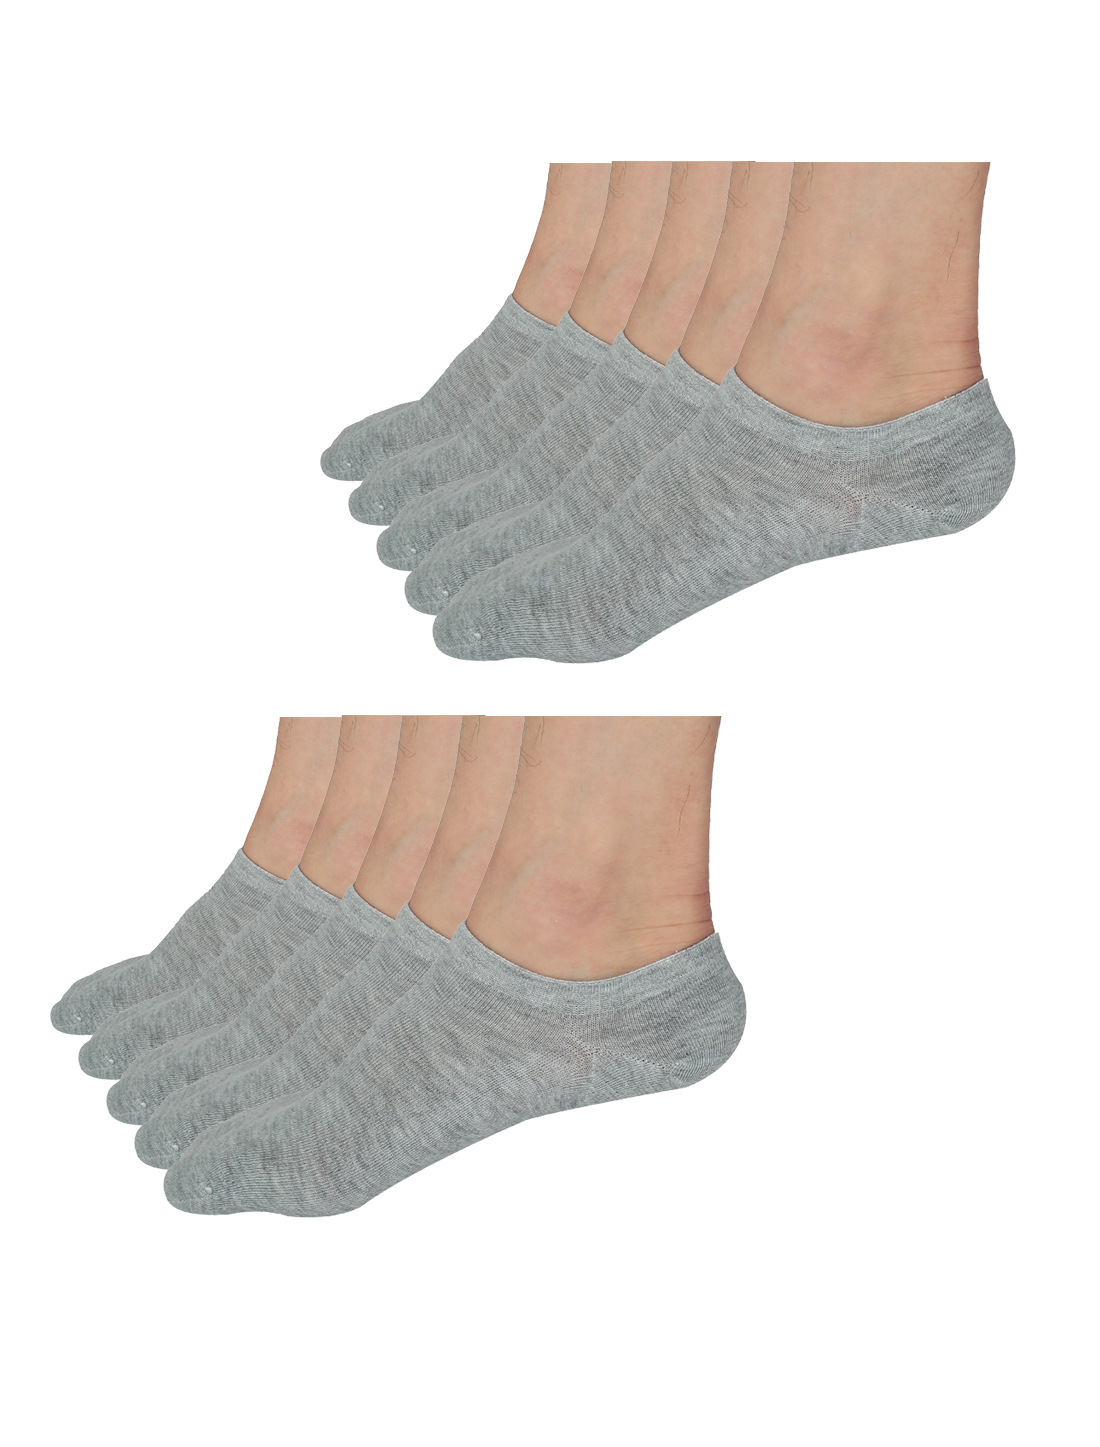 Men Elastic Cuff Low Cut Ankle Socks 10 Pairs Light Gray